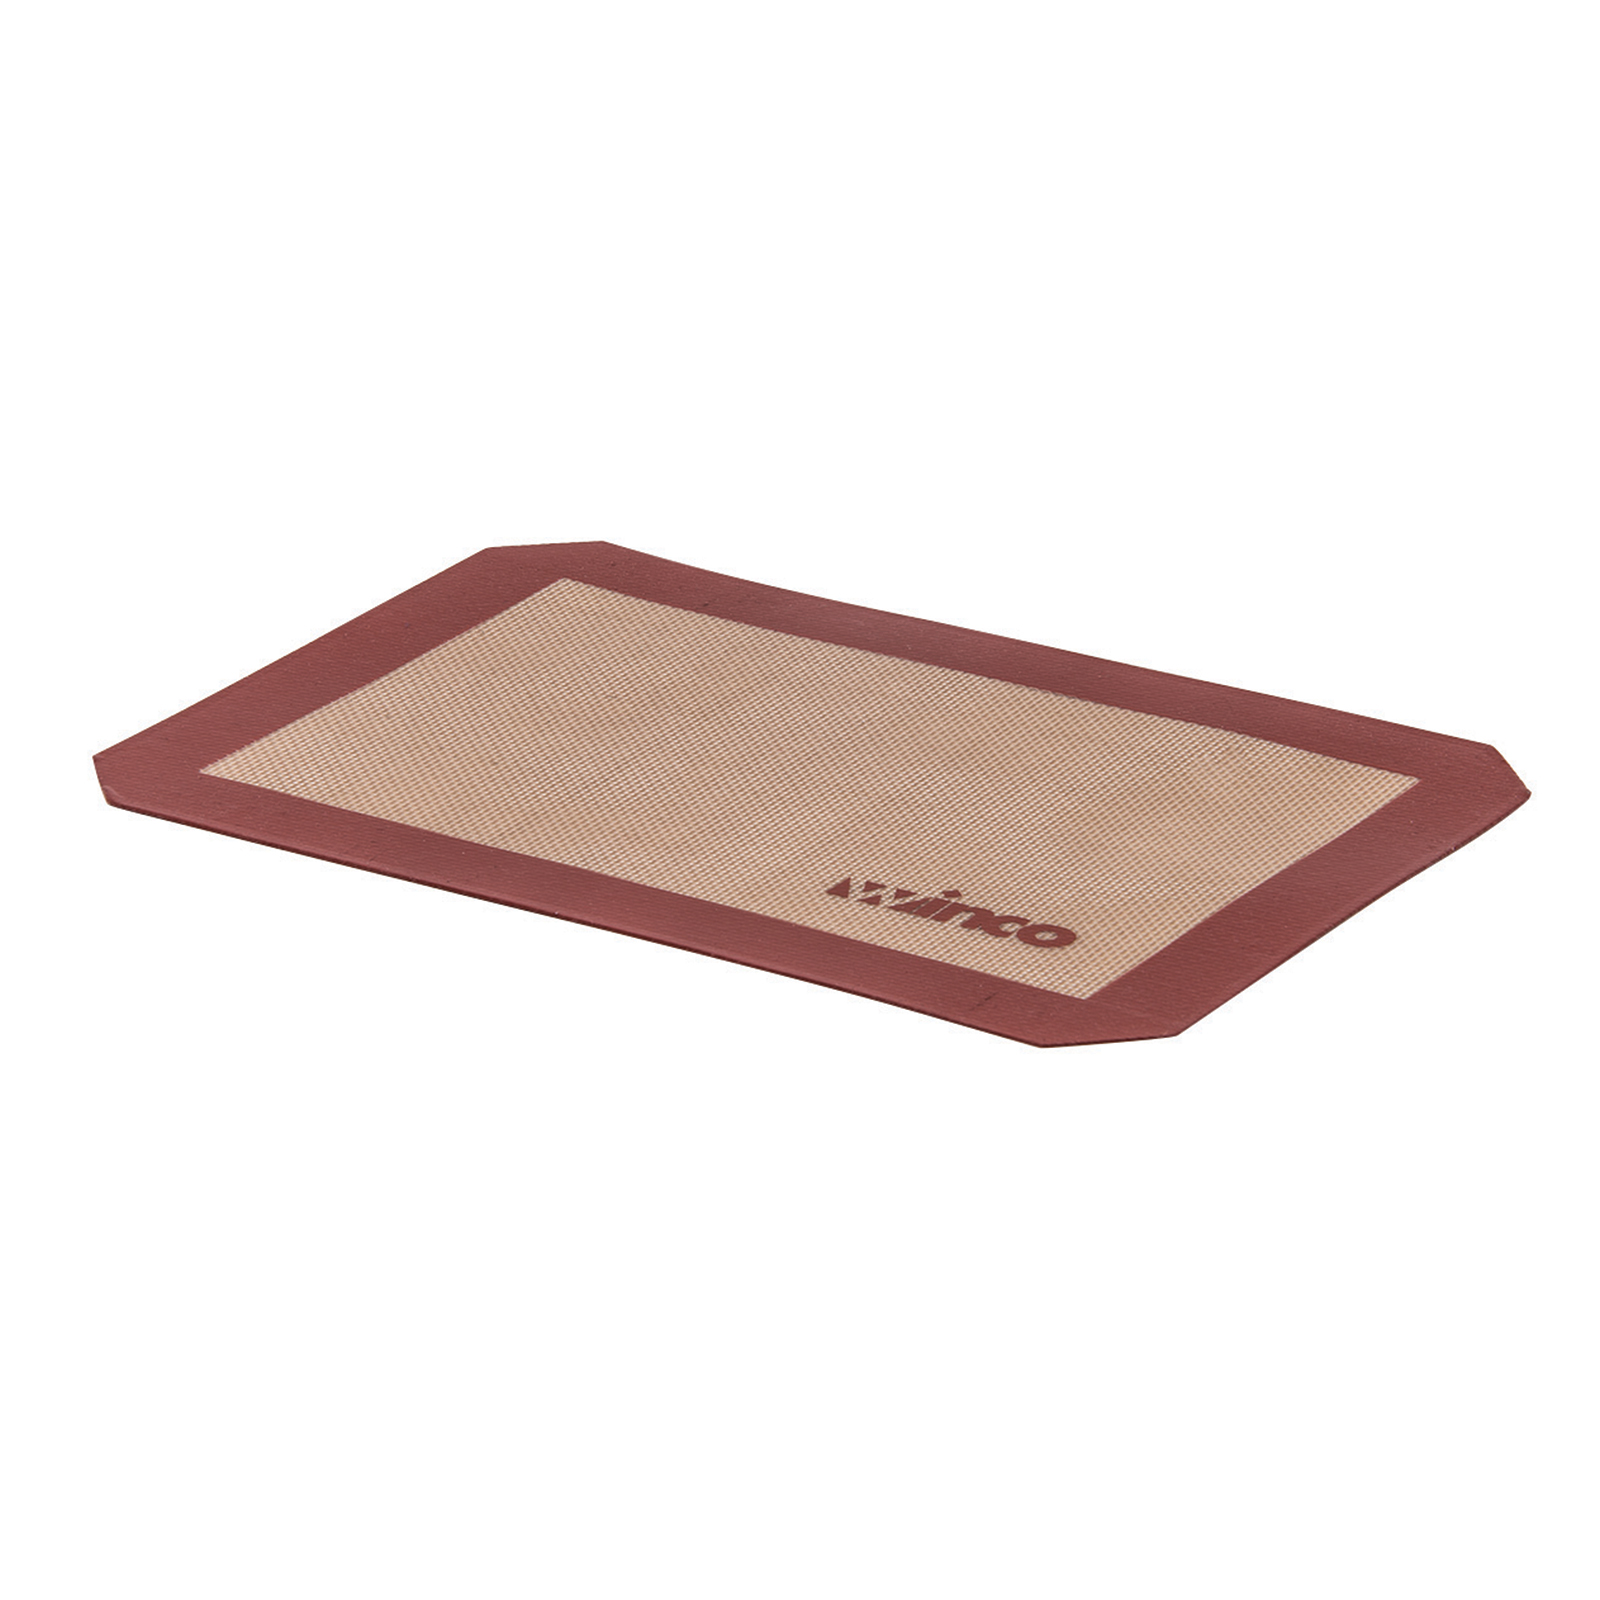 Winco SBS-11 baking mat